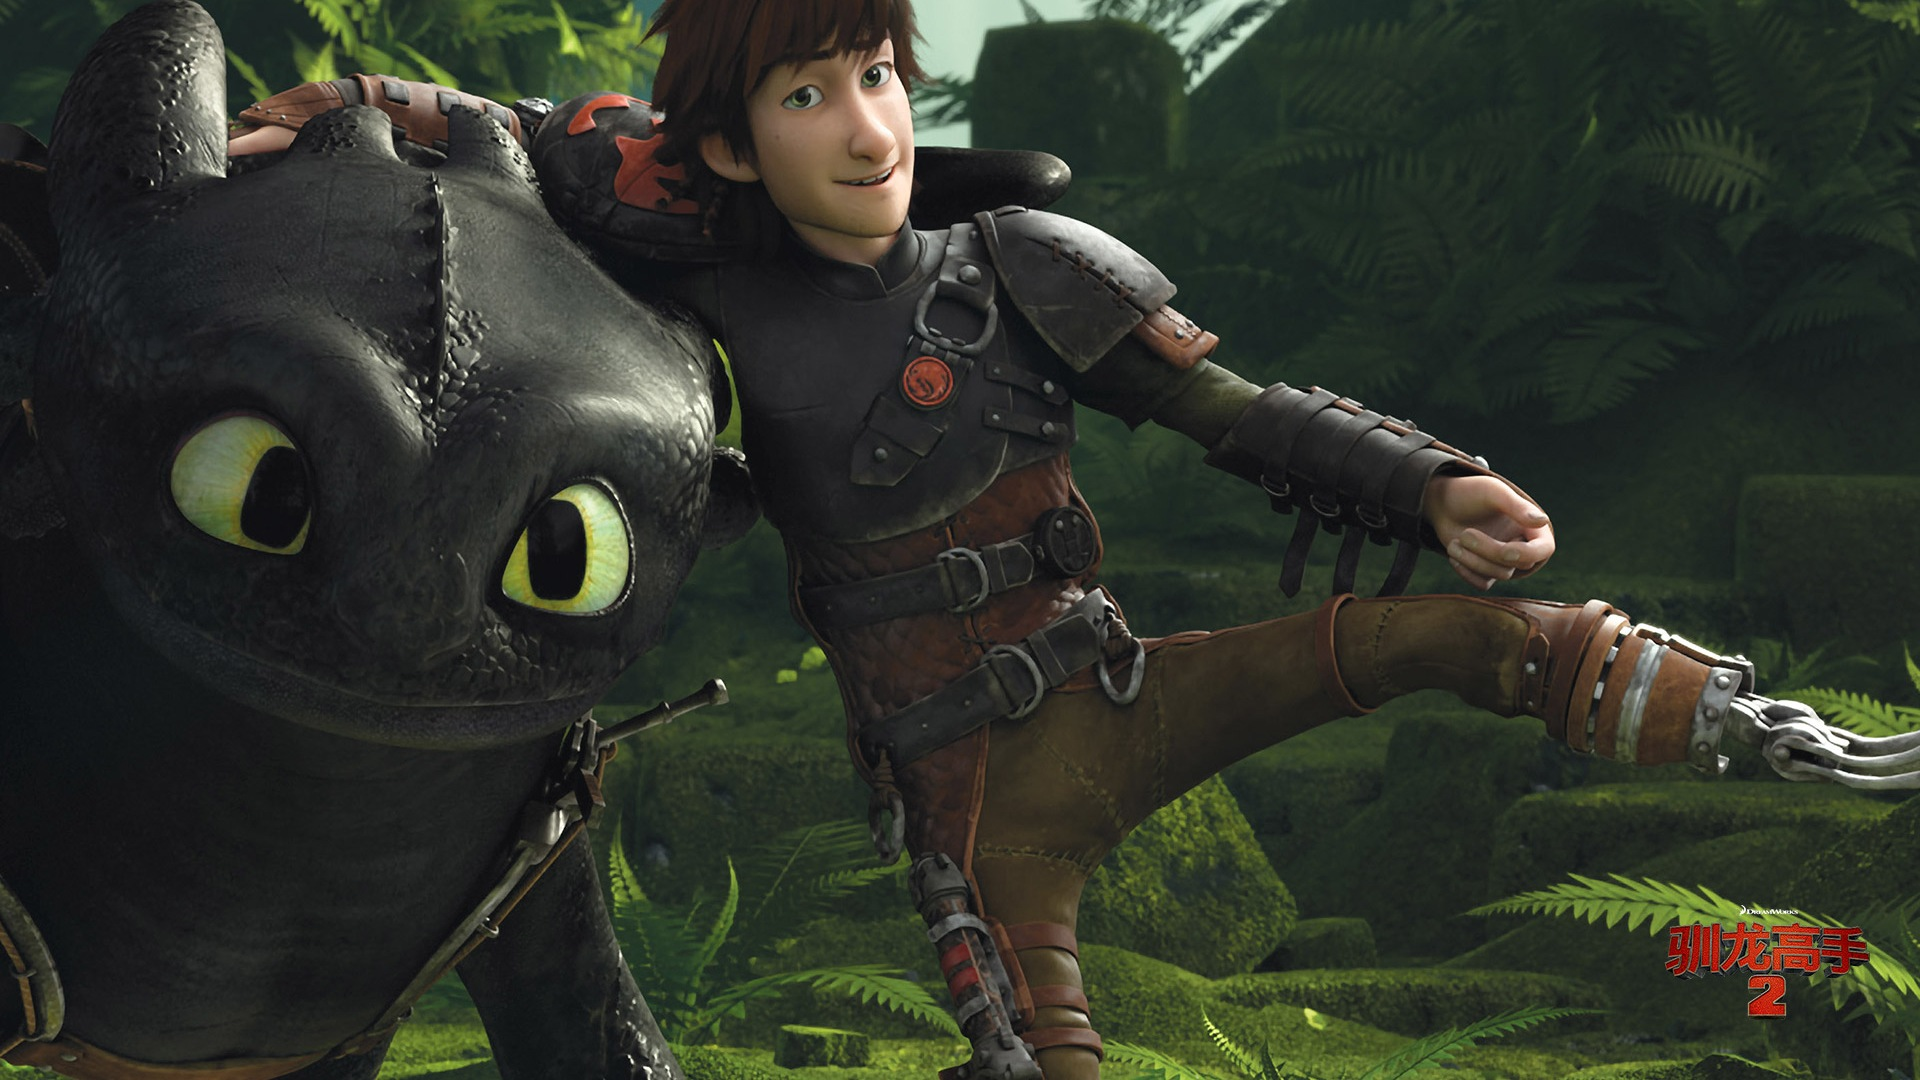 How To Train Your Dragon 2 Hd Wallpapers 3 1920x1080 Wallpaper